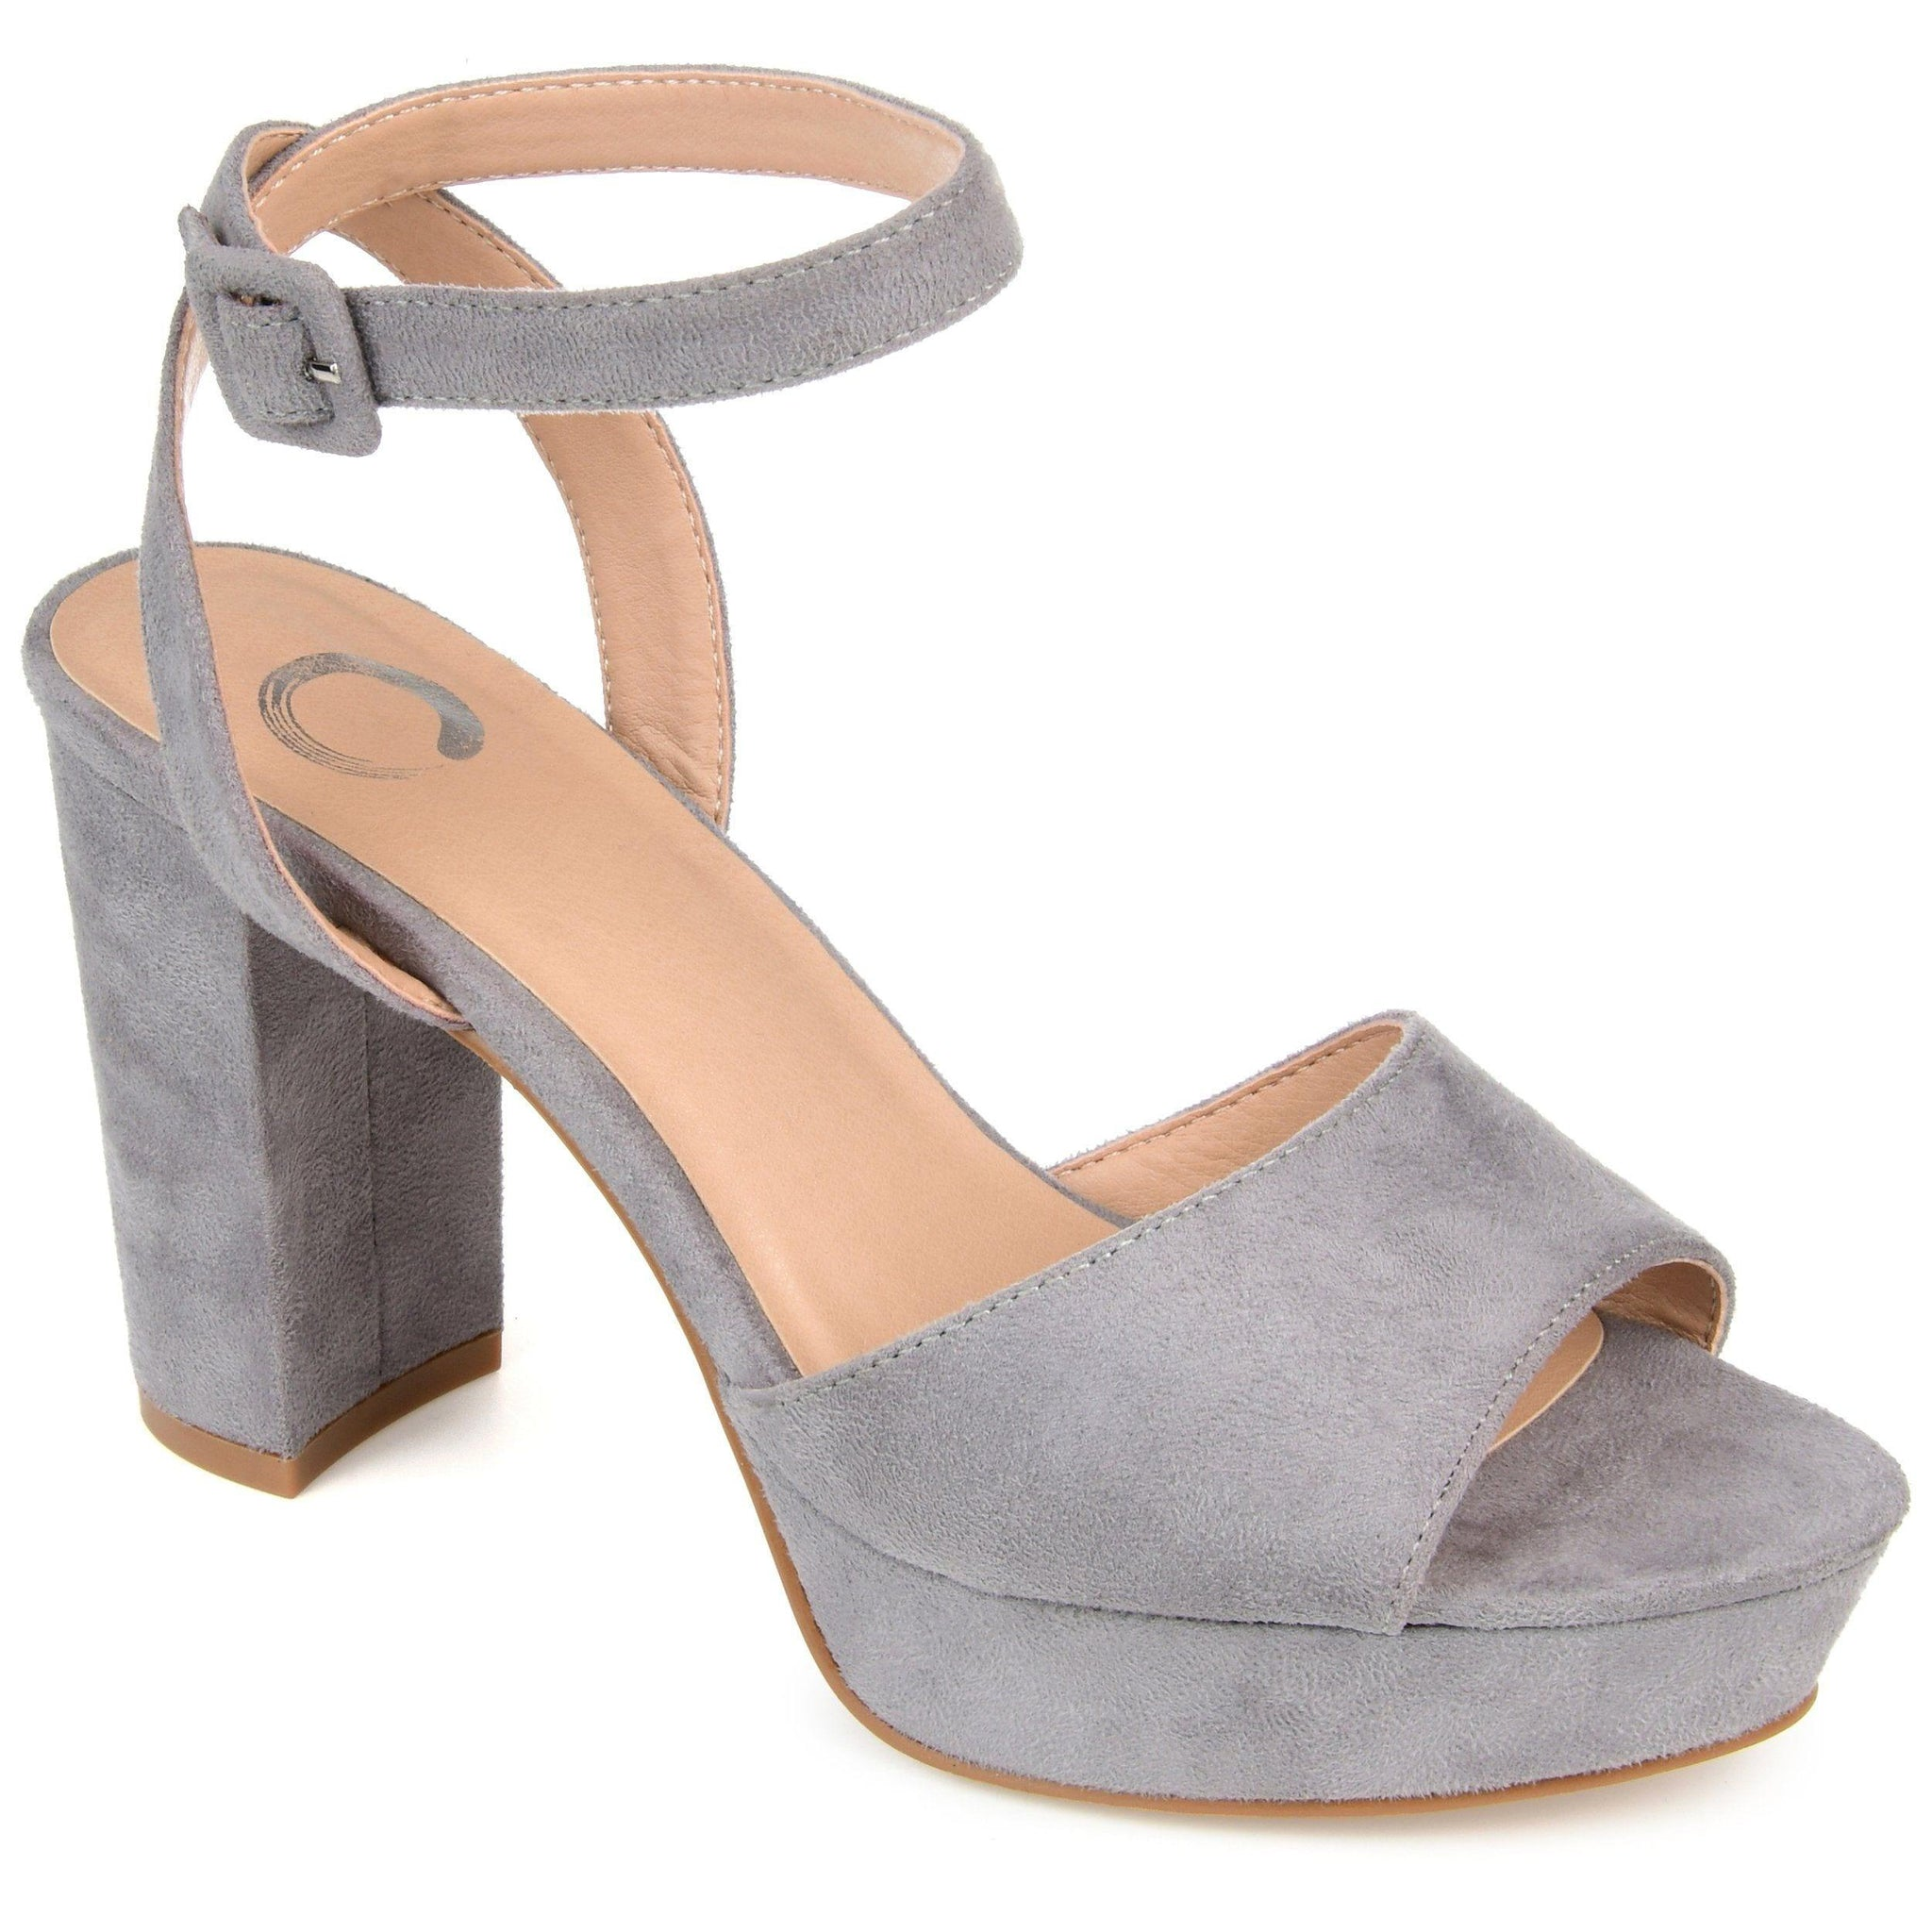 NAIRRI SHOES Journee Collection Grey 7.5